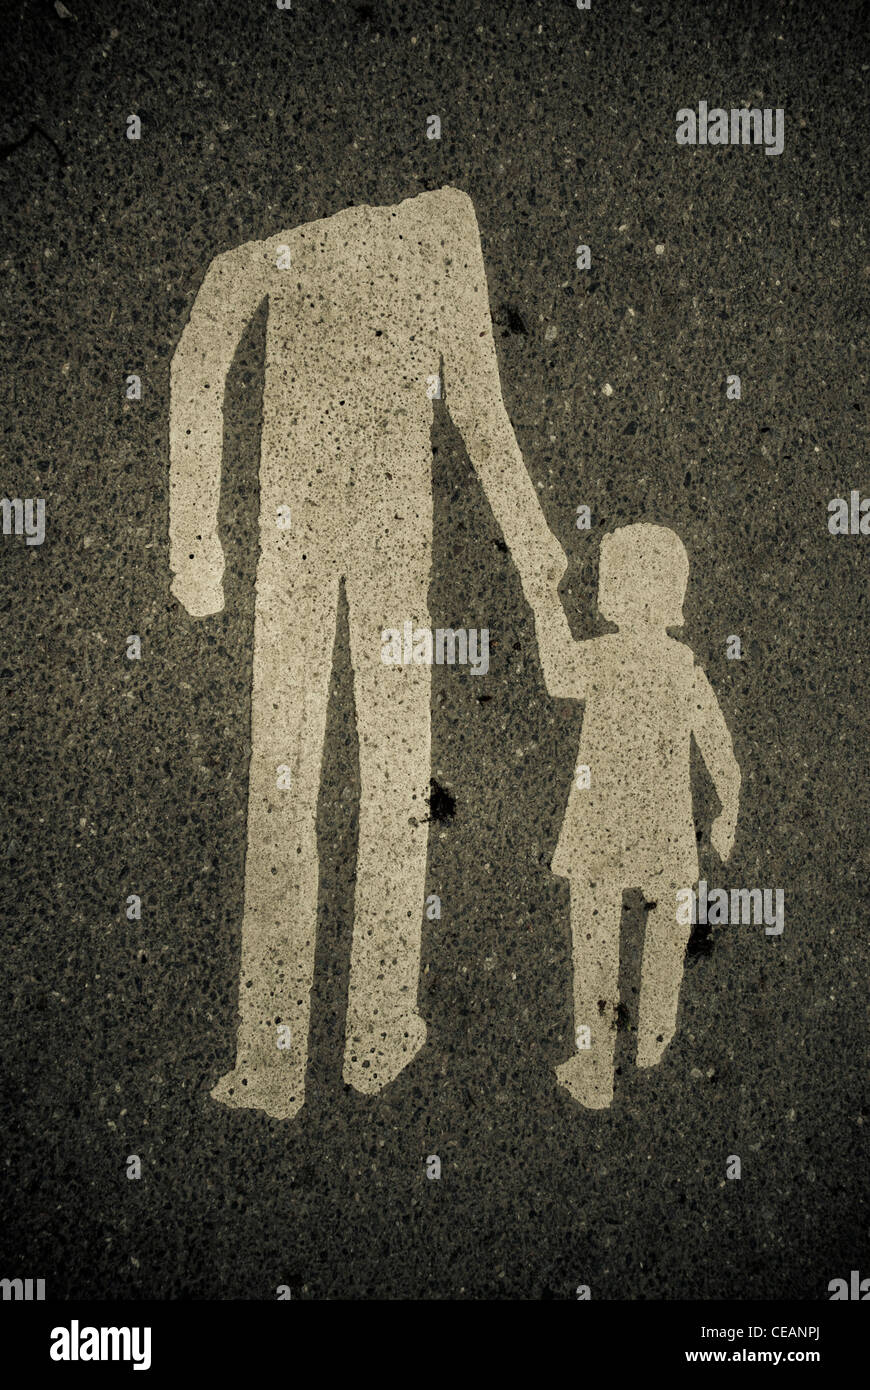 Sign with adult leading a child - Stock Image